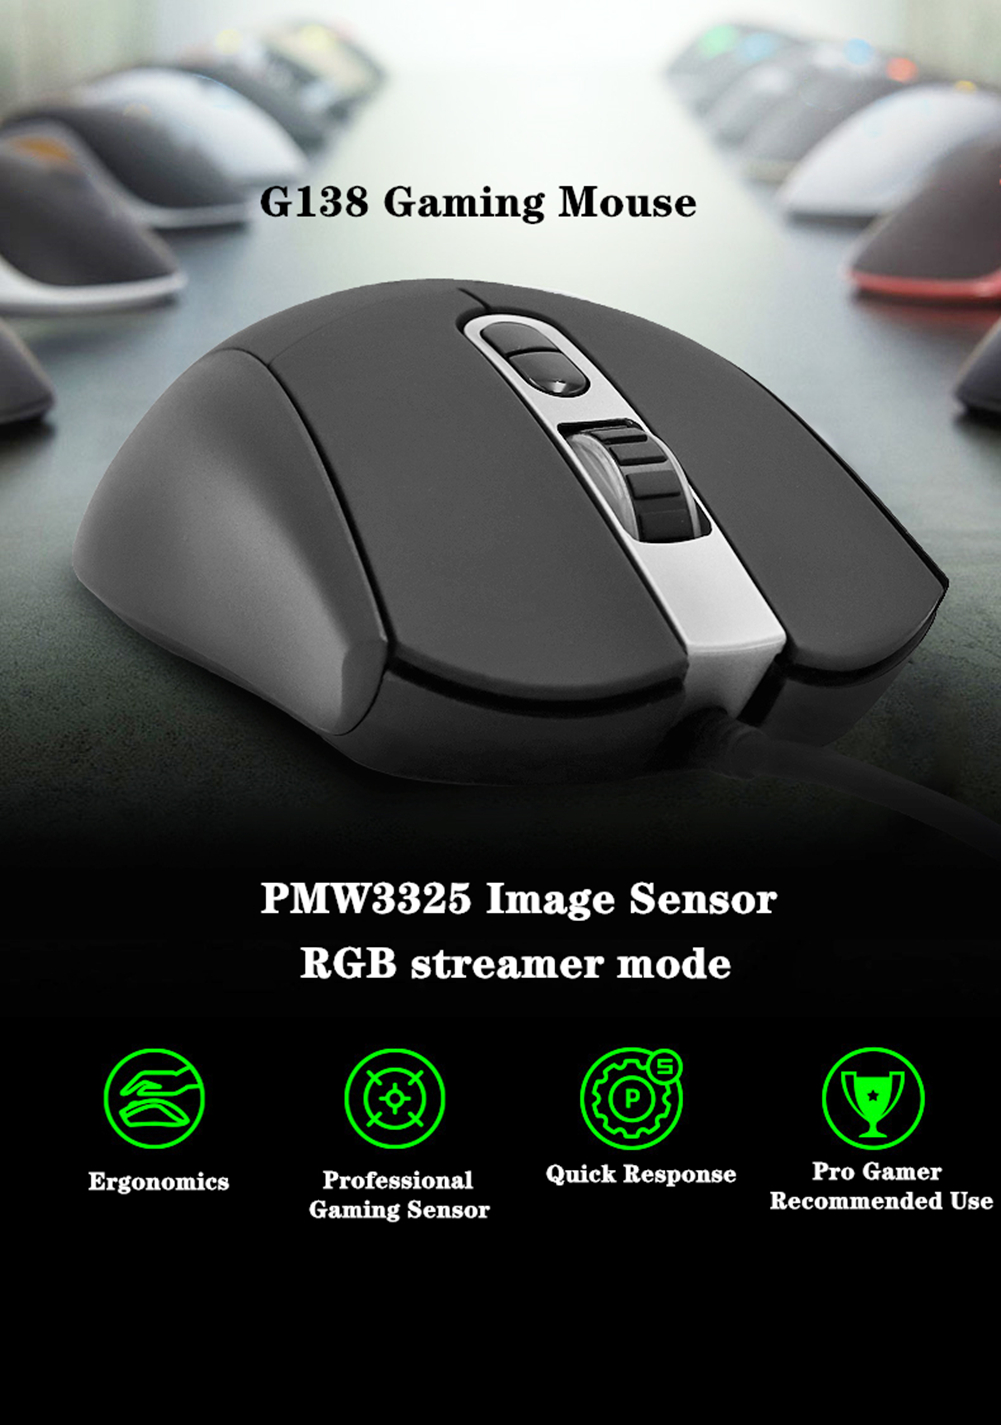 Wired G138 Gaming mouse gamer 5000 DPI for FPS MOBA E-sport Gaming Mice Symmetrical PMW3325 Optical Sensor for PC ProCSGO PUBG